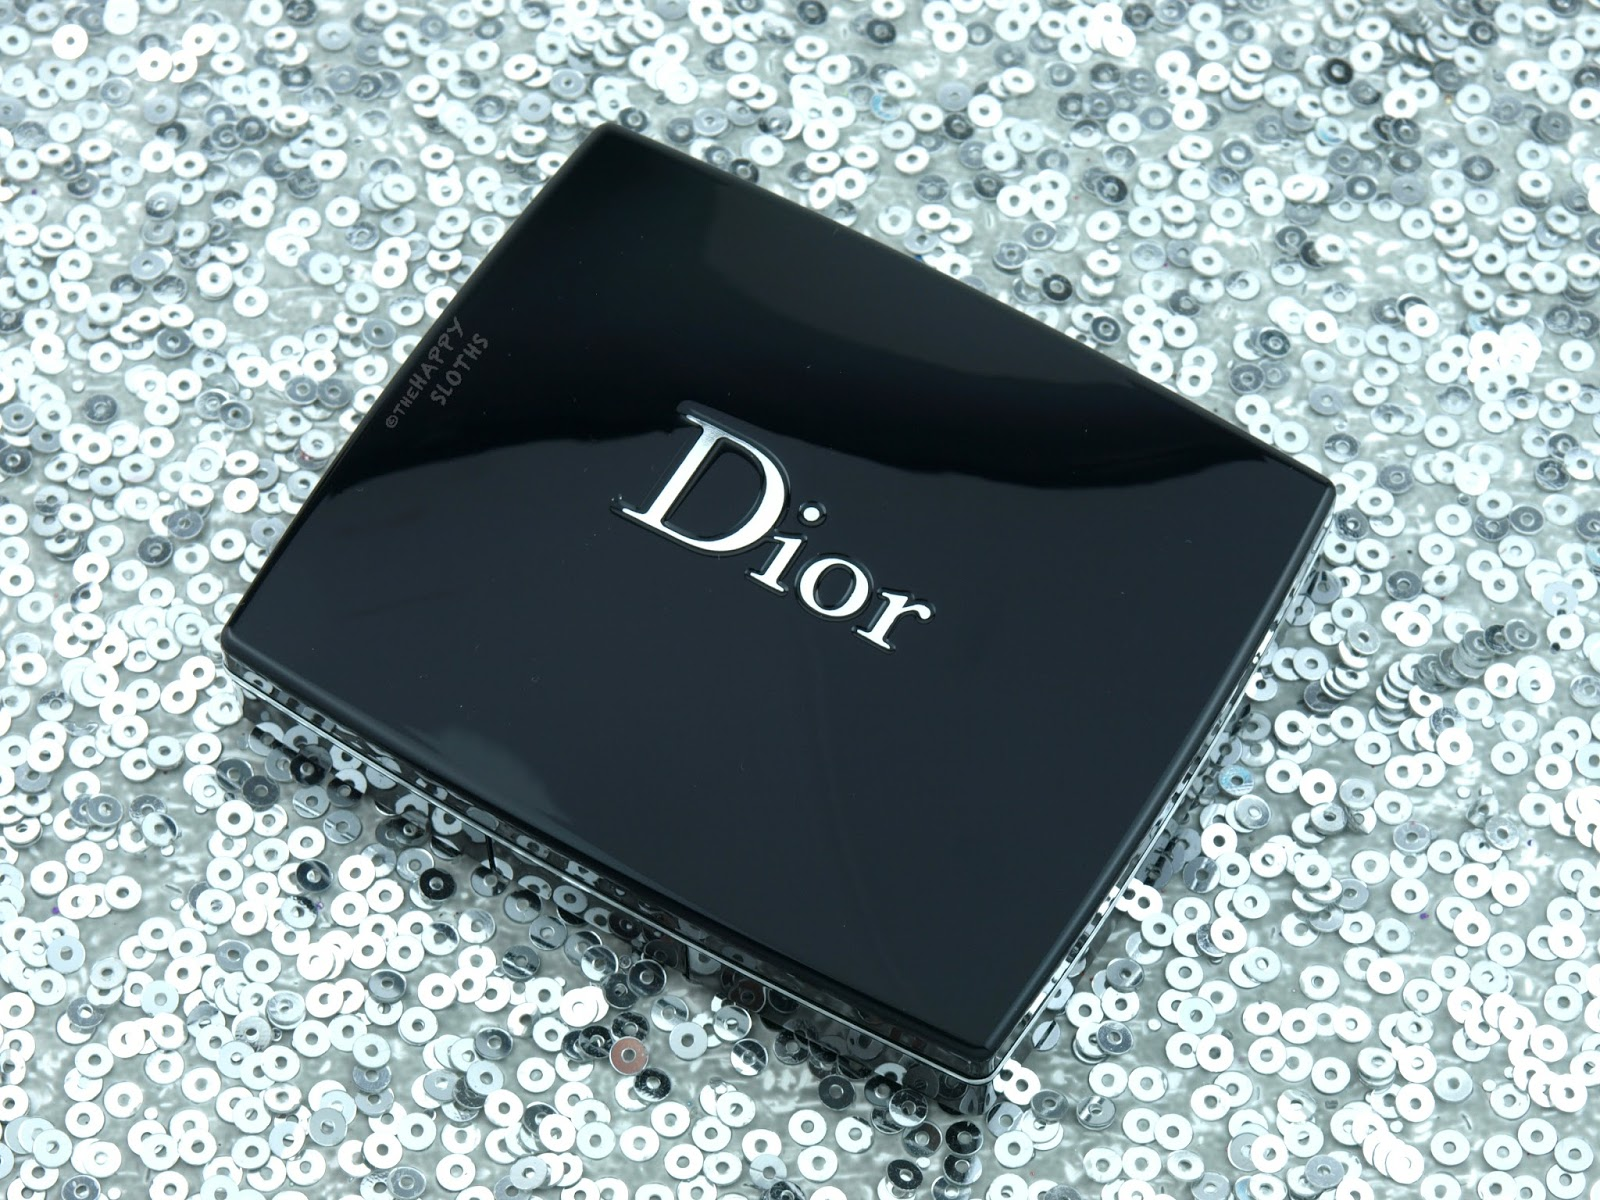 Dior Holiday 2016 Splendor Collection: Swatches and Review